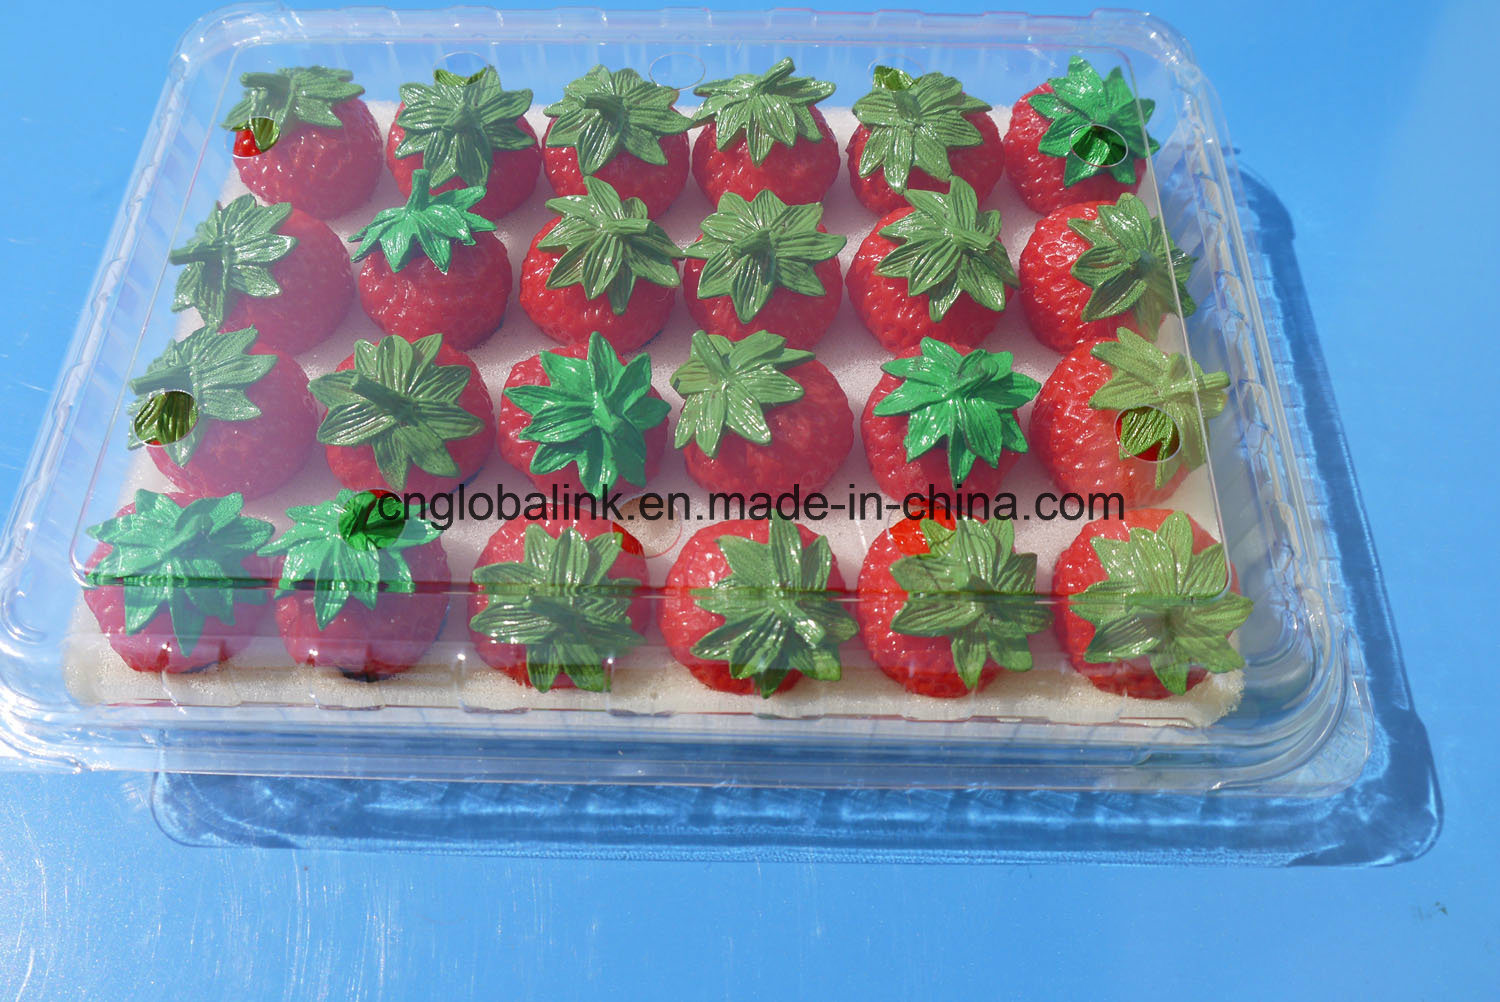 [Hot Item] Plastic Fruit Packaging Container Clamshells Blister Packaging  Box for Strawberry 500 Gram FDA Approved